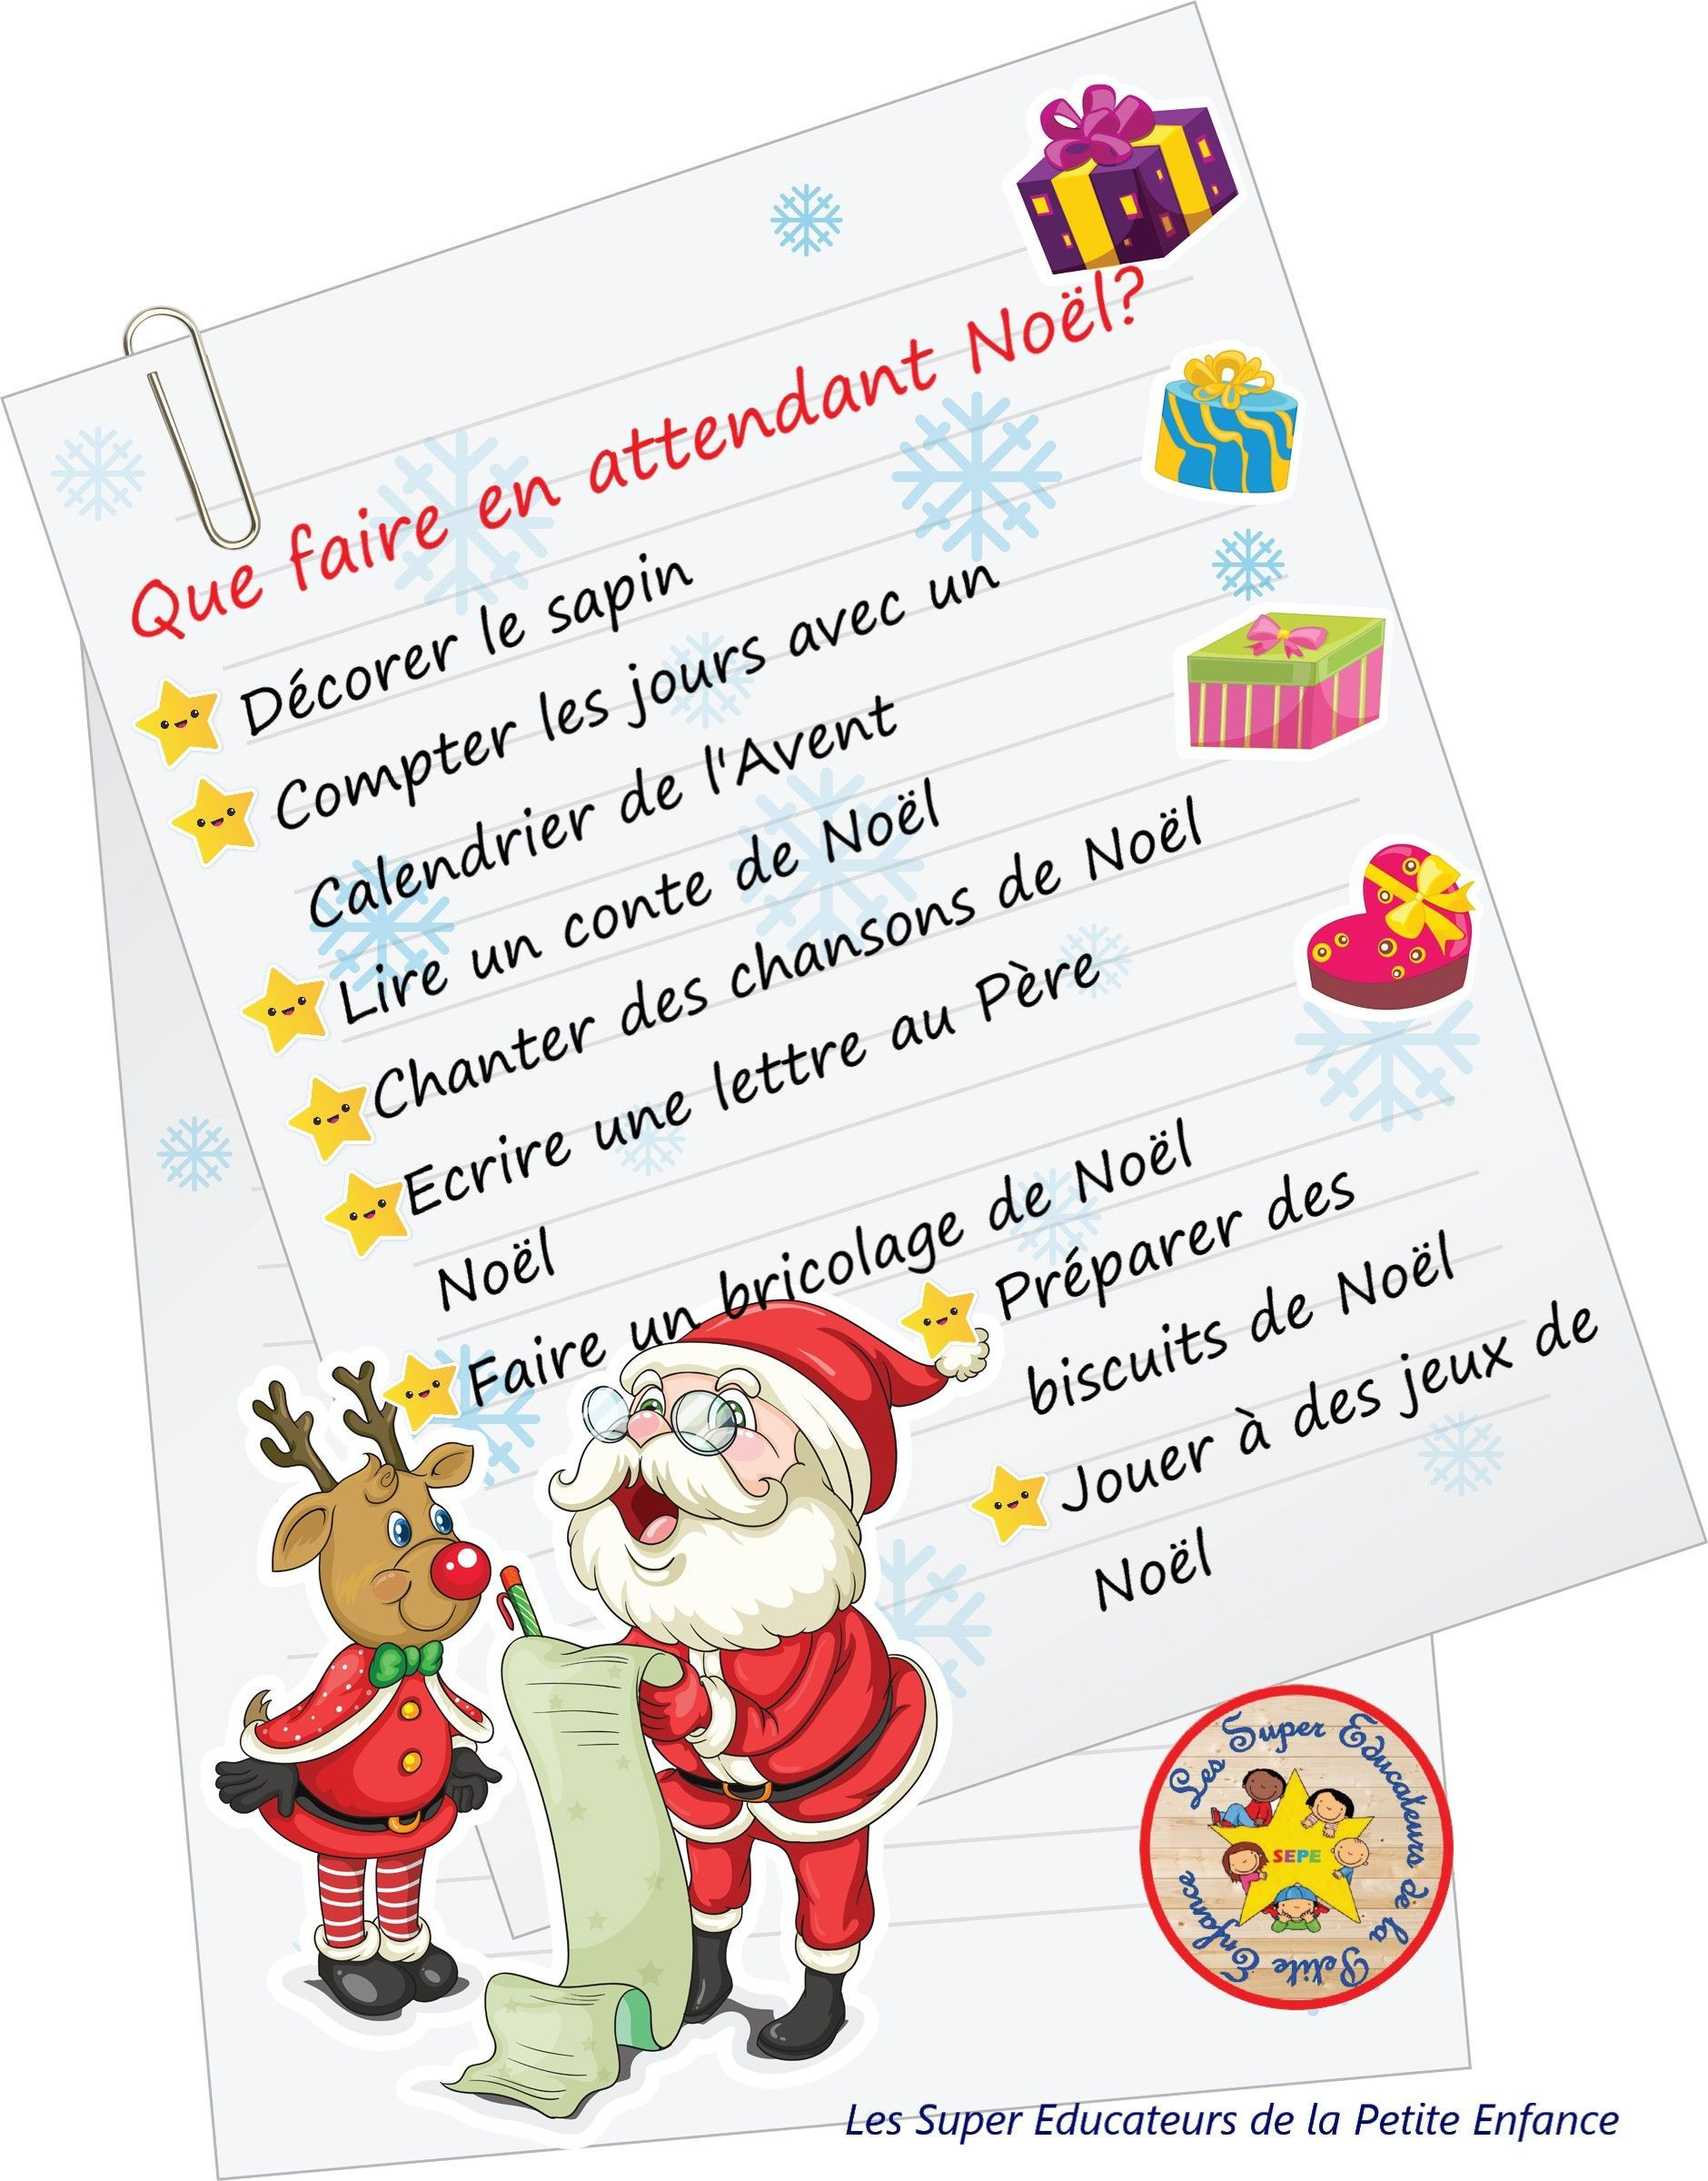 En Attendant Noel Que faire en attendant Noël ? | Winter printables, Facebook sign